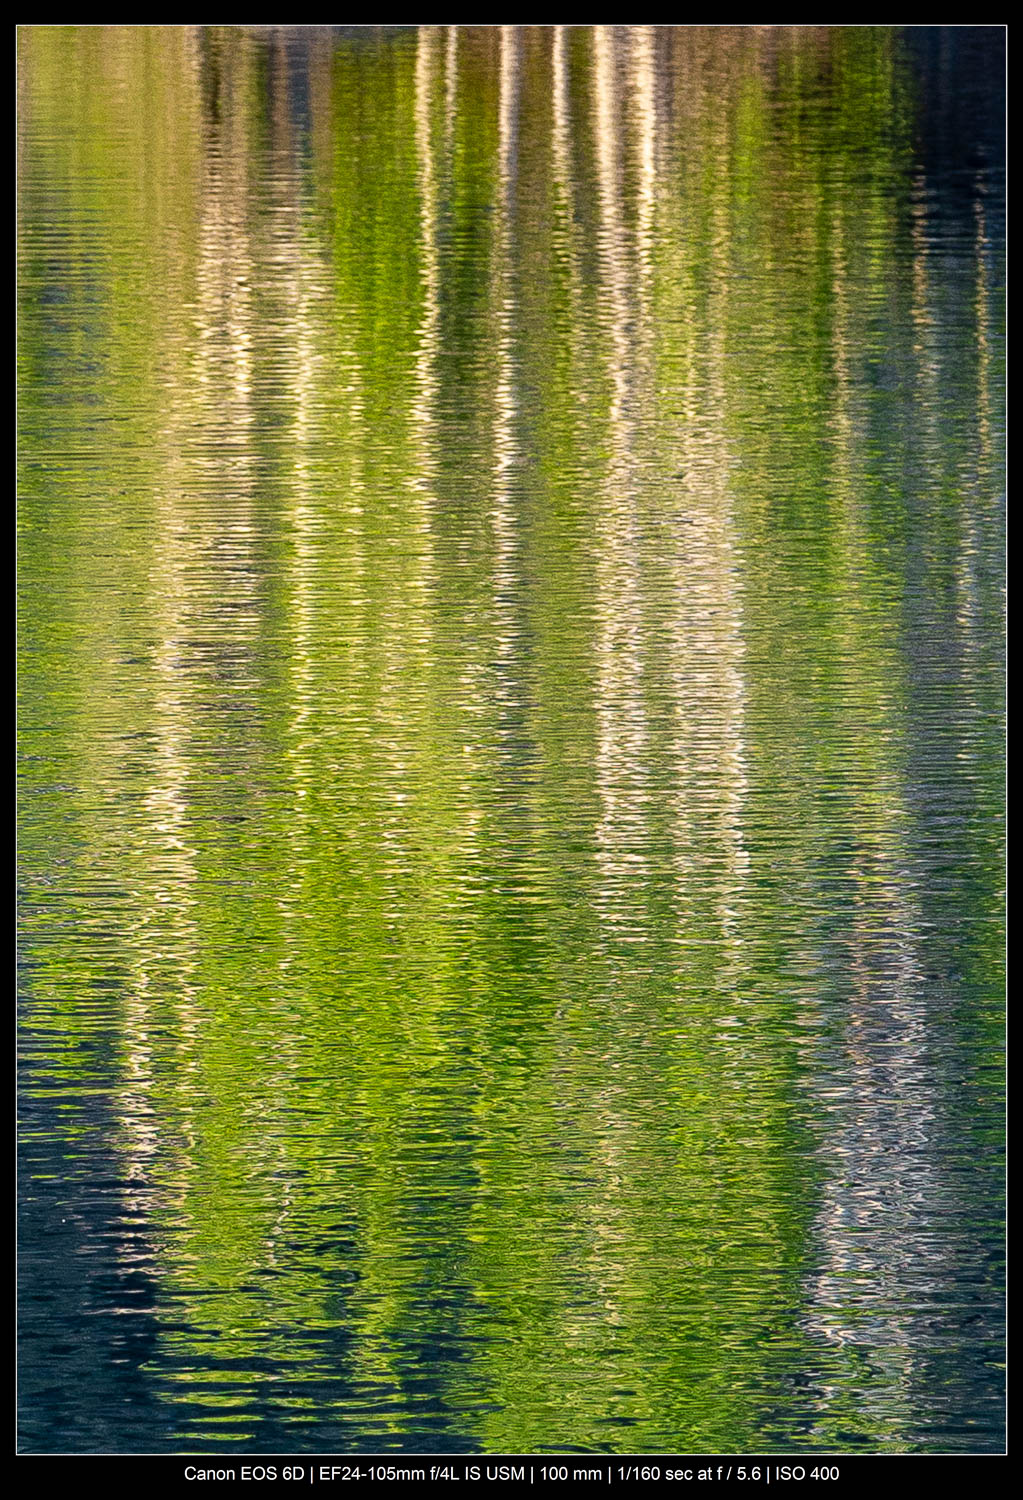 Abstract Landscape Photography - Watercolors